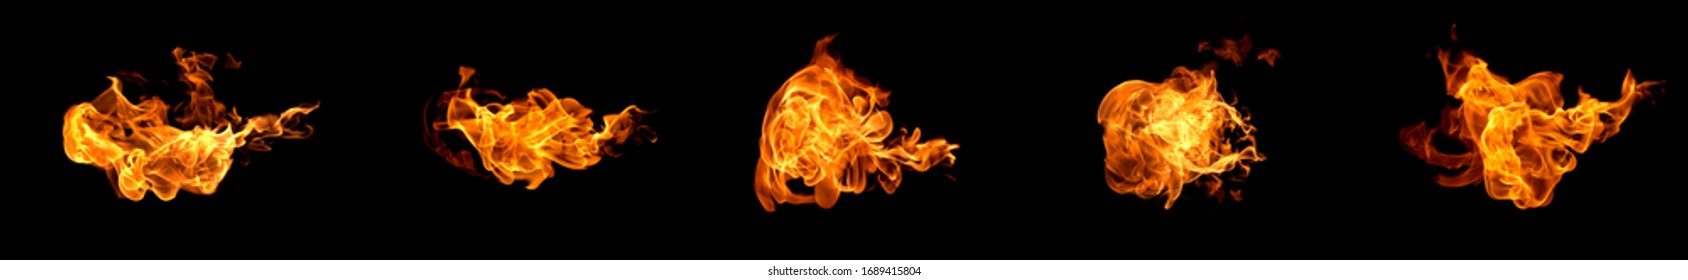 Fire flames on a black background abstract.